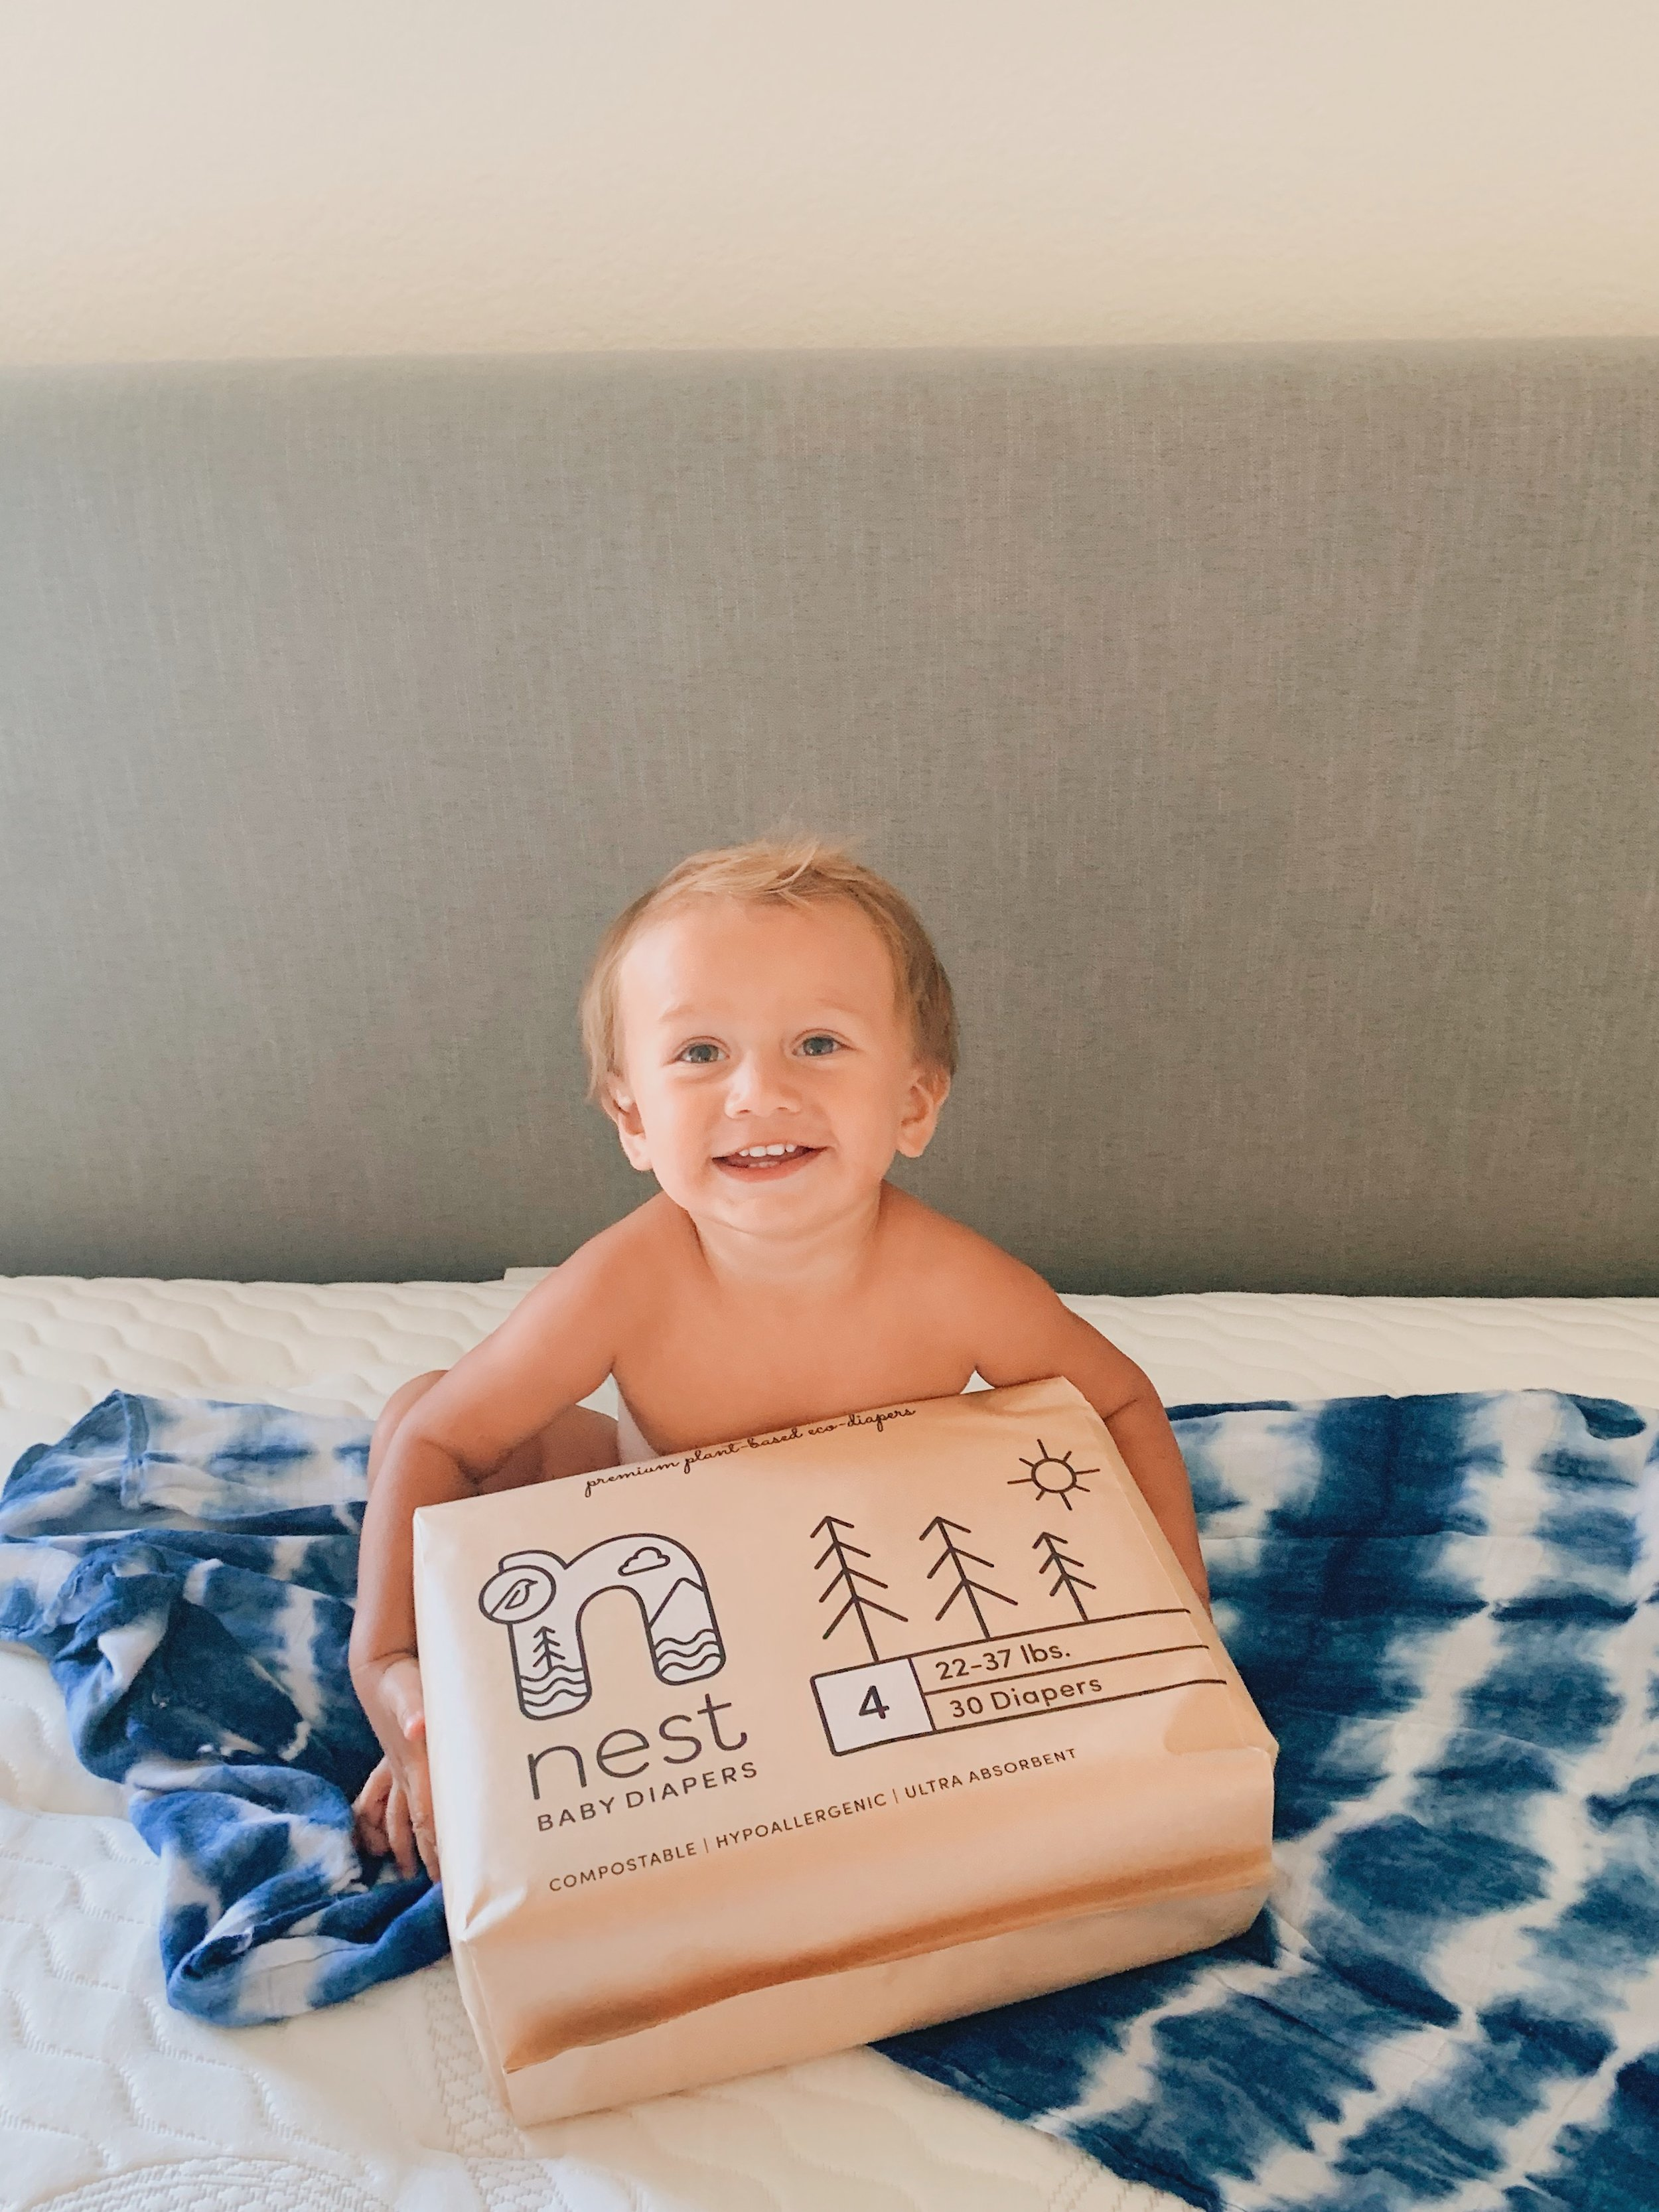 Biodegradable diapers that are great for the environment and perfect for sensitive skin